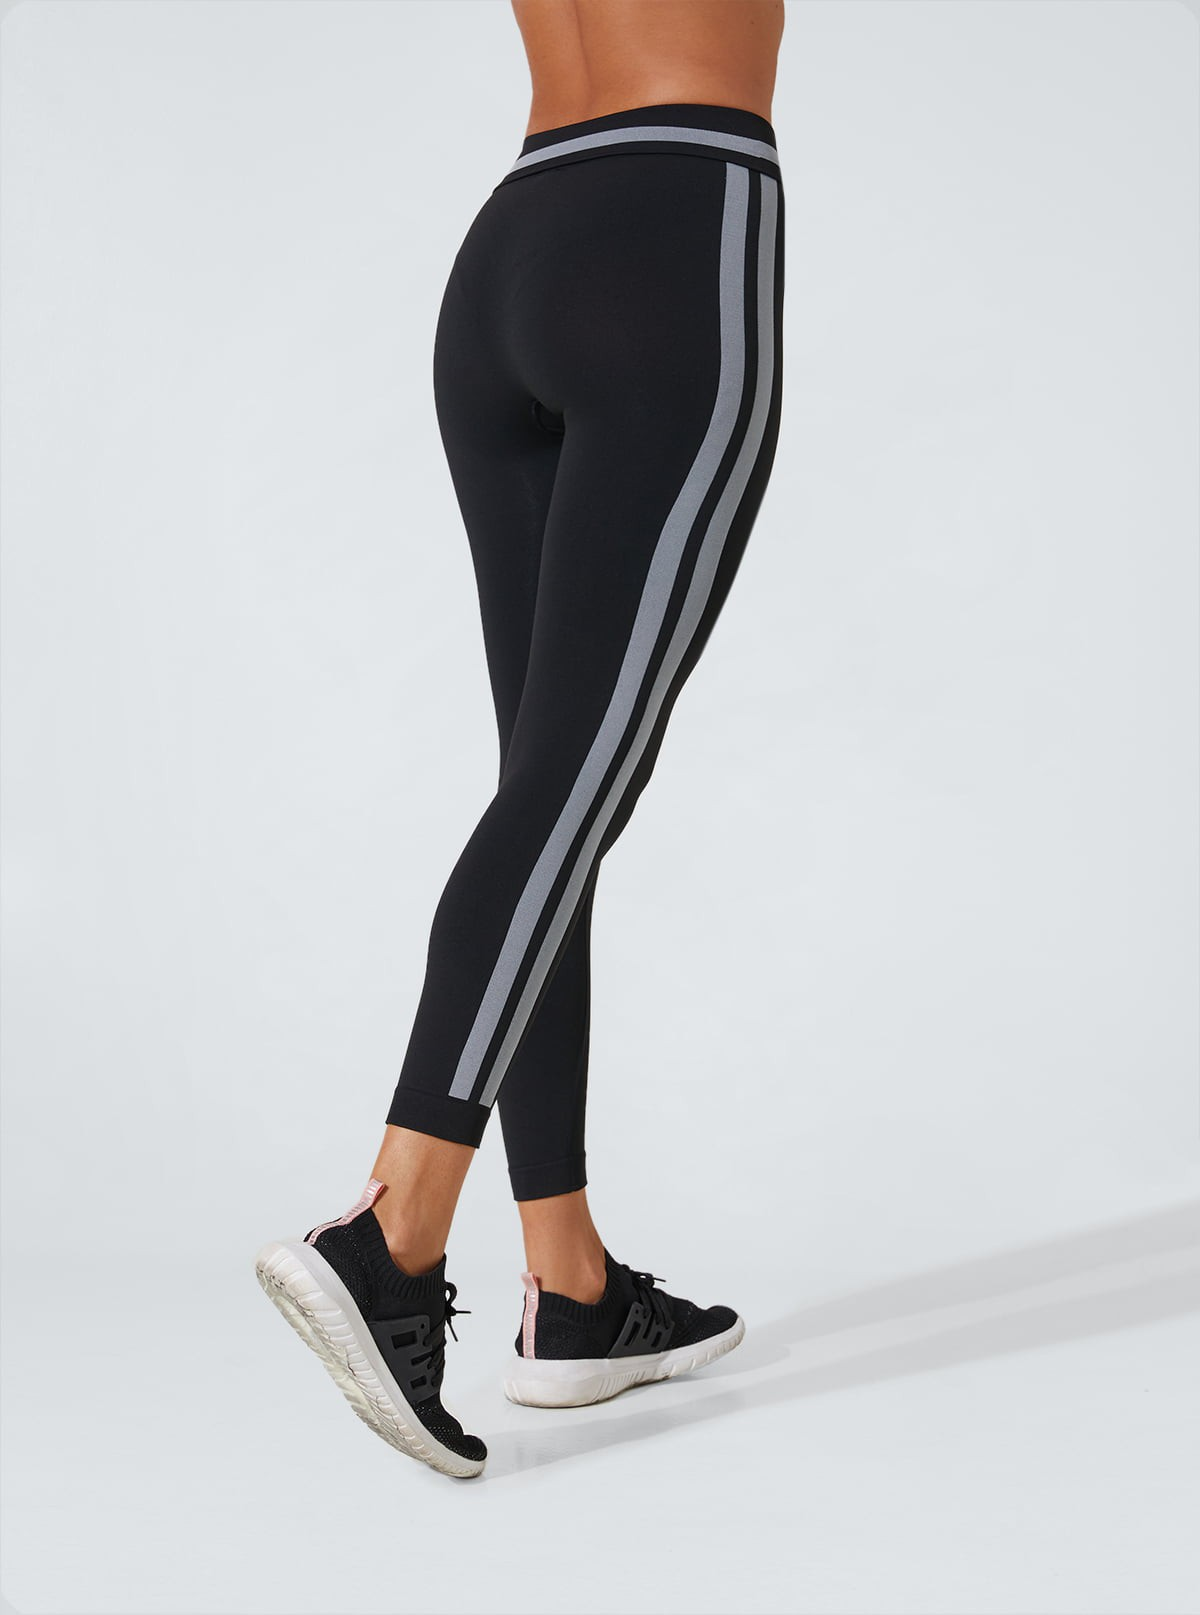 Superslim Leggings flat tummy, hydrating, with side bands